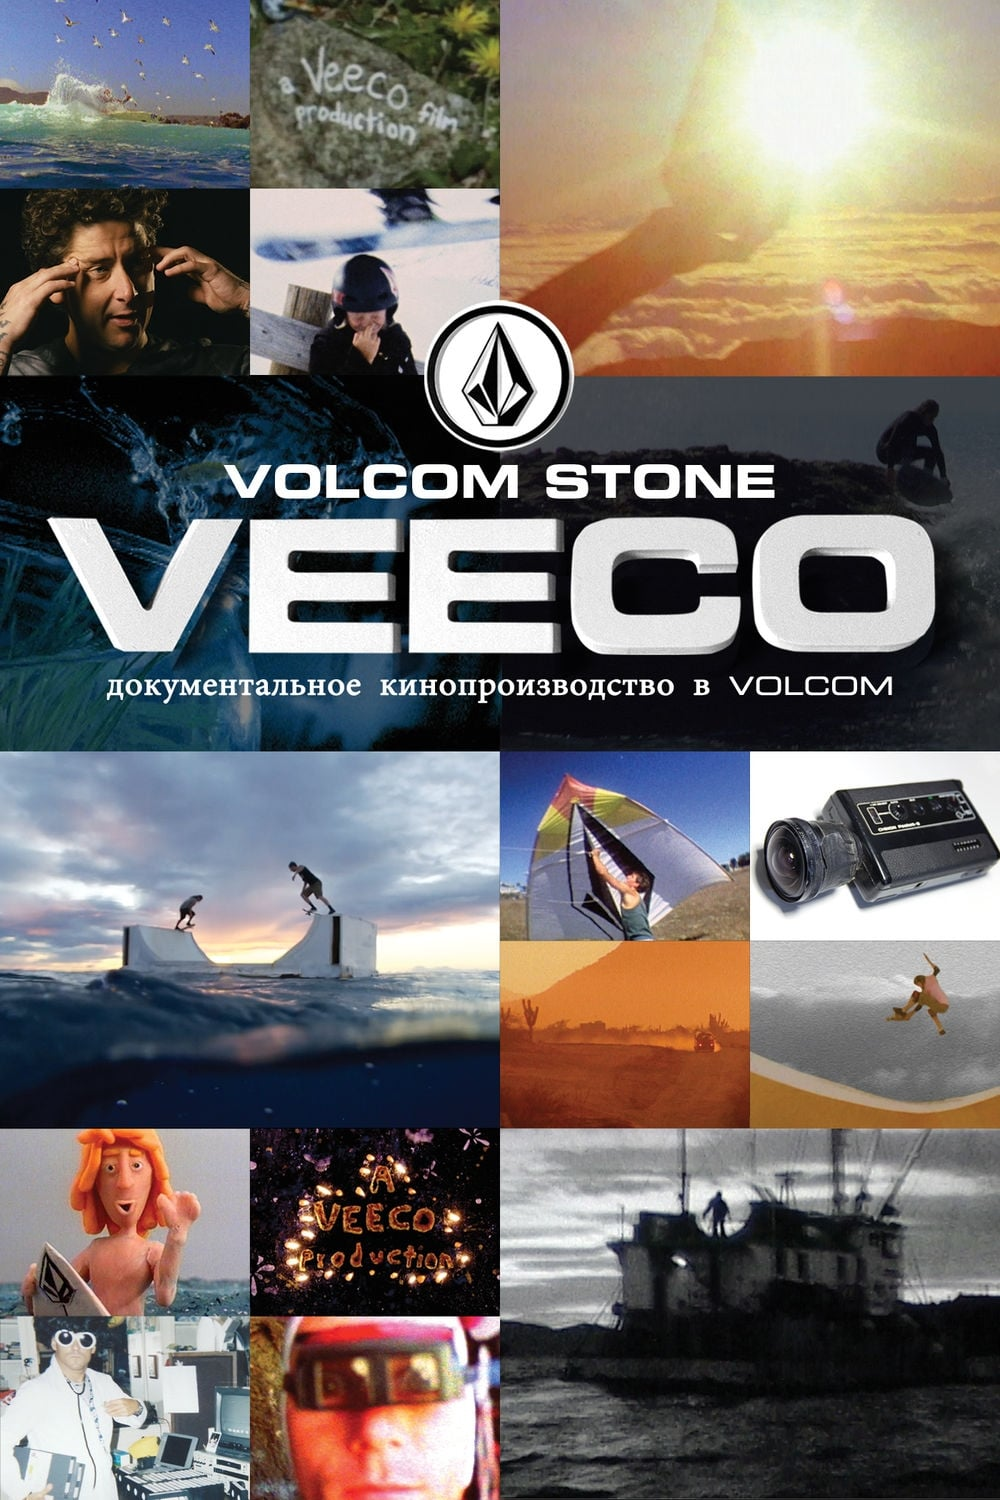 Veeco: A Volcom Film Making Documentary on FREECABLE TV